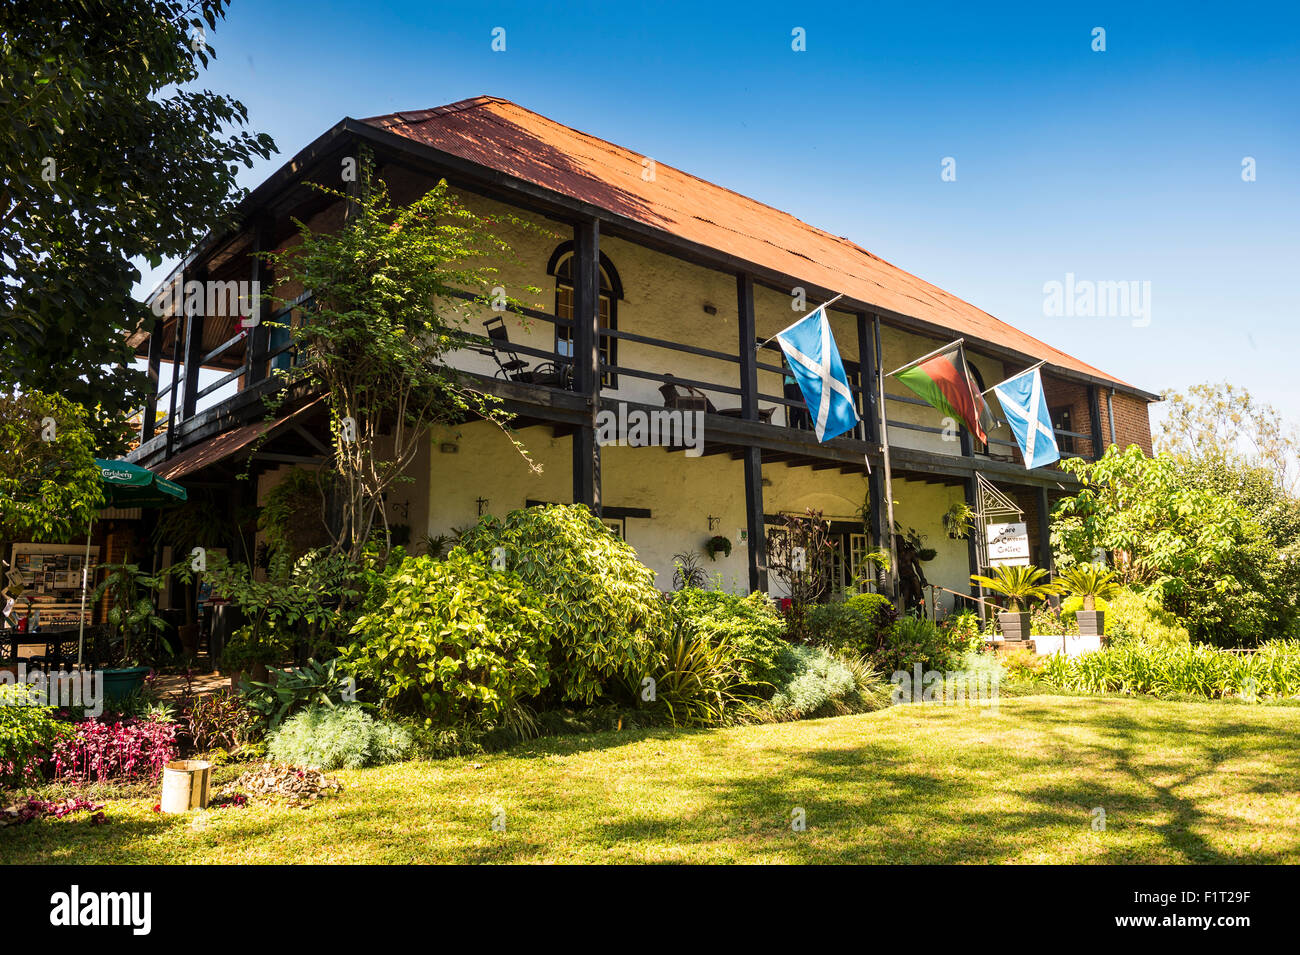 The historical Mandala House, Blantyre, Malawi, Africa - Stock Image